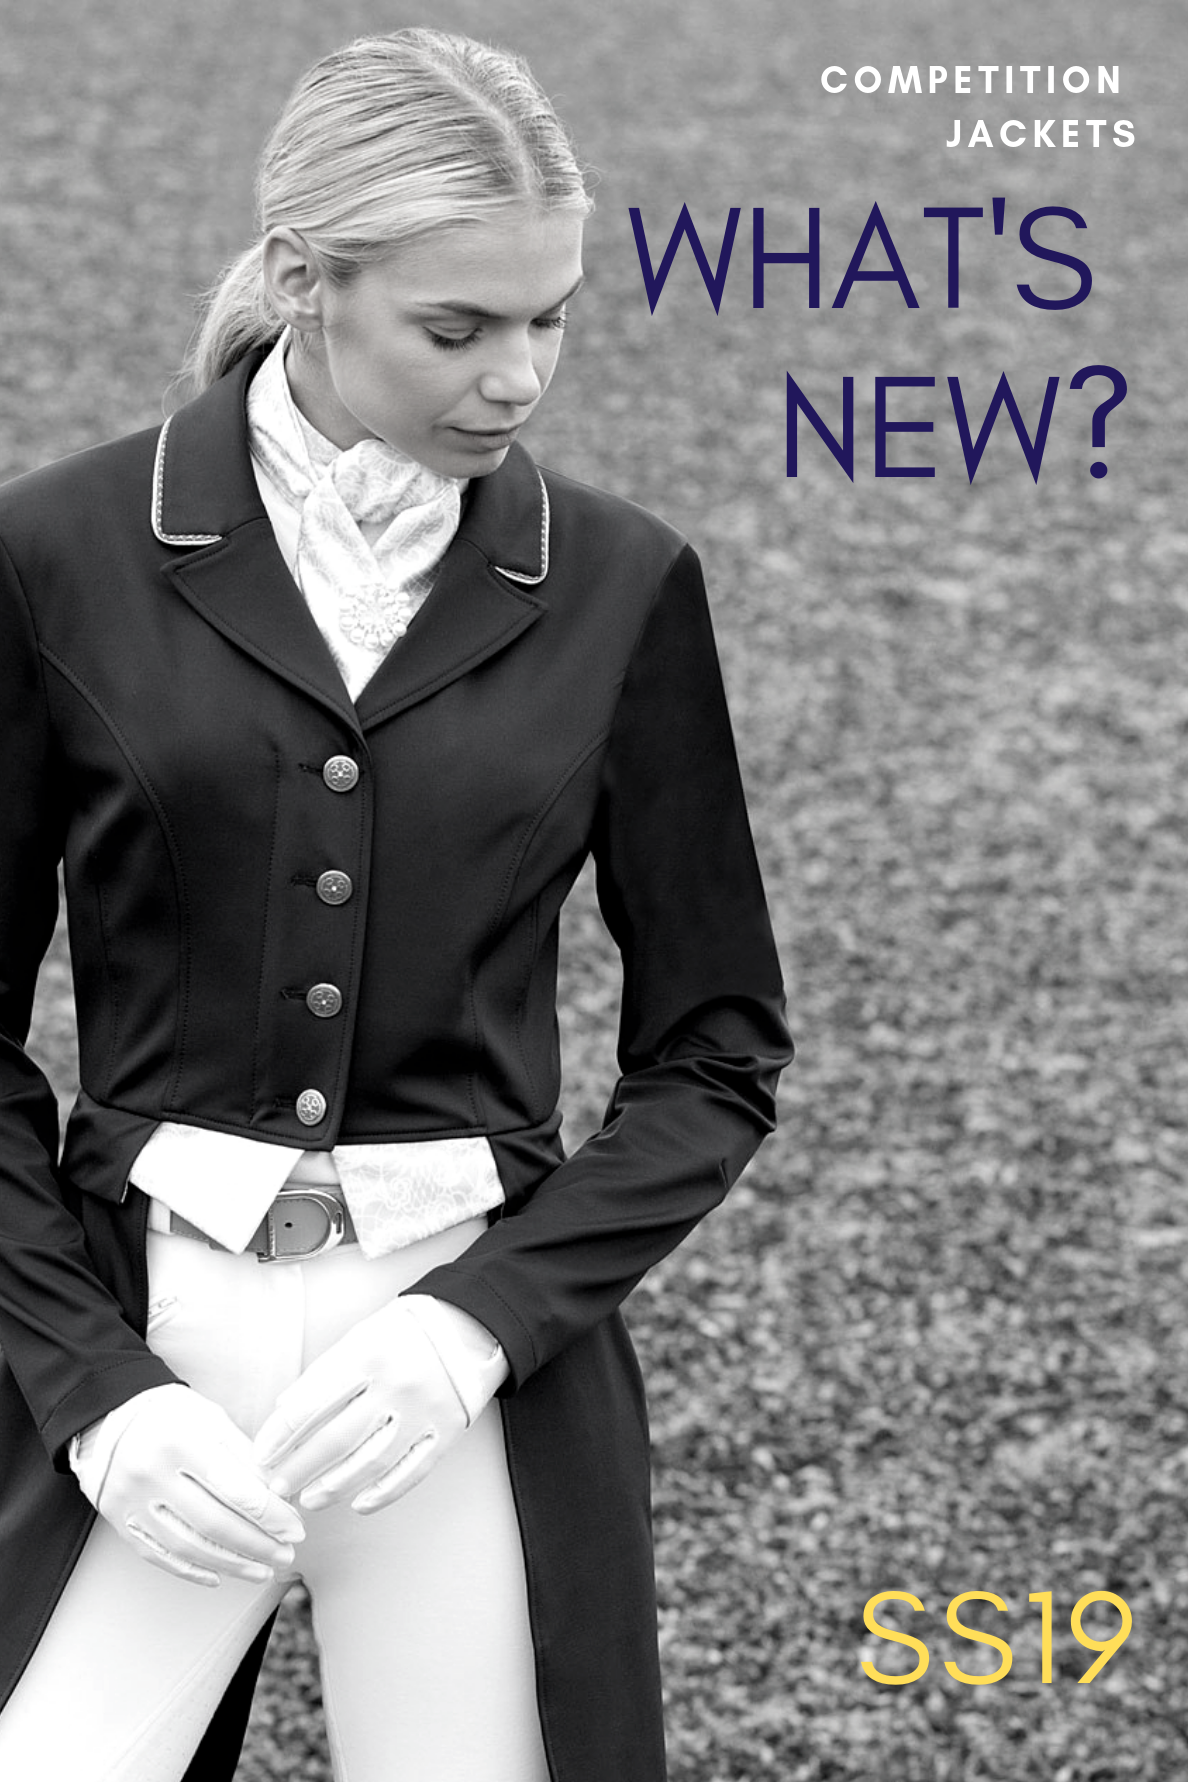 new equestrian clothing